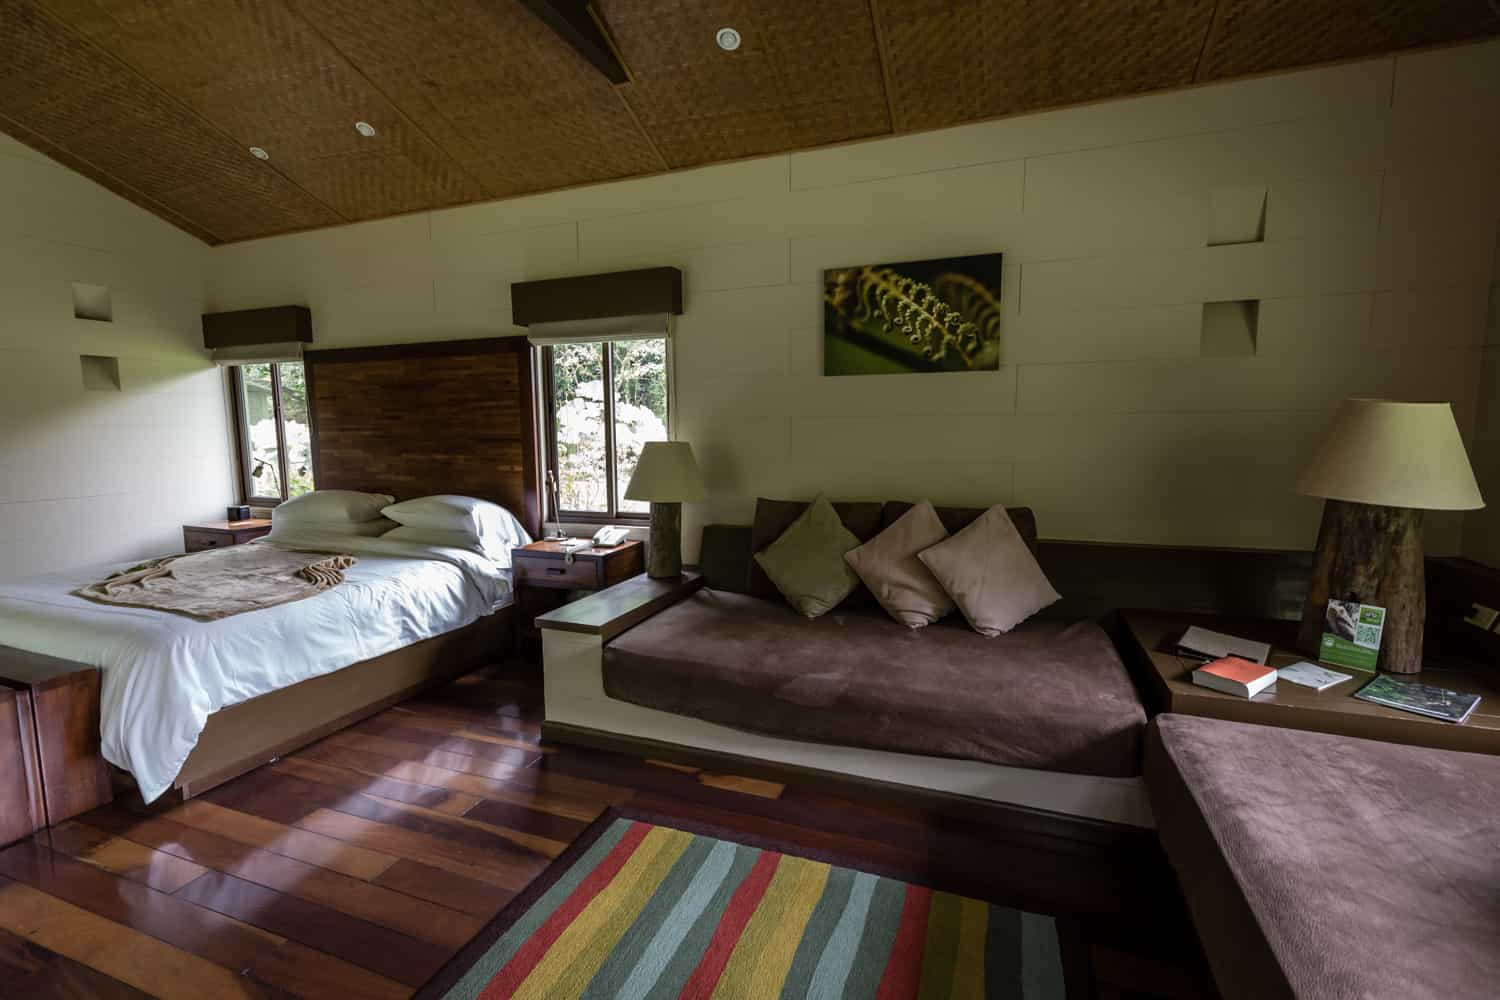 Bedroom and seating area in honeymoon suite with wood floors.